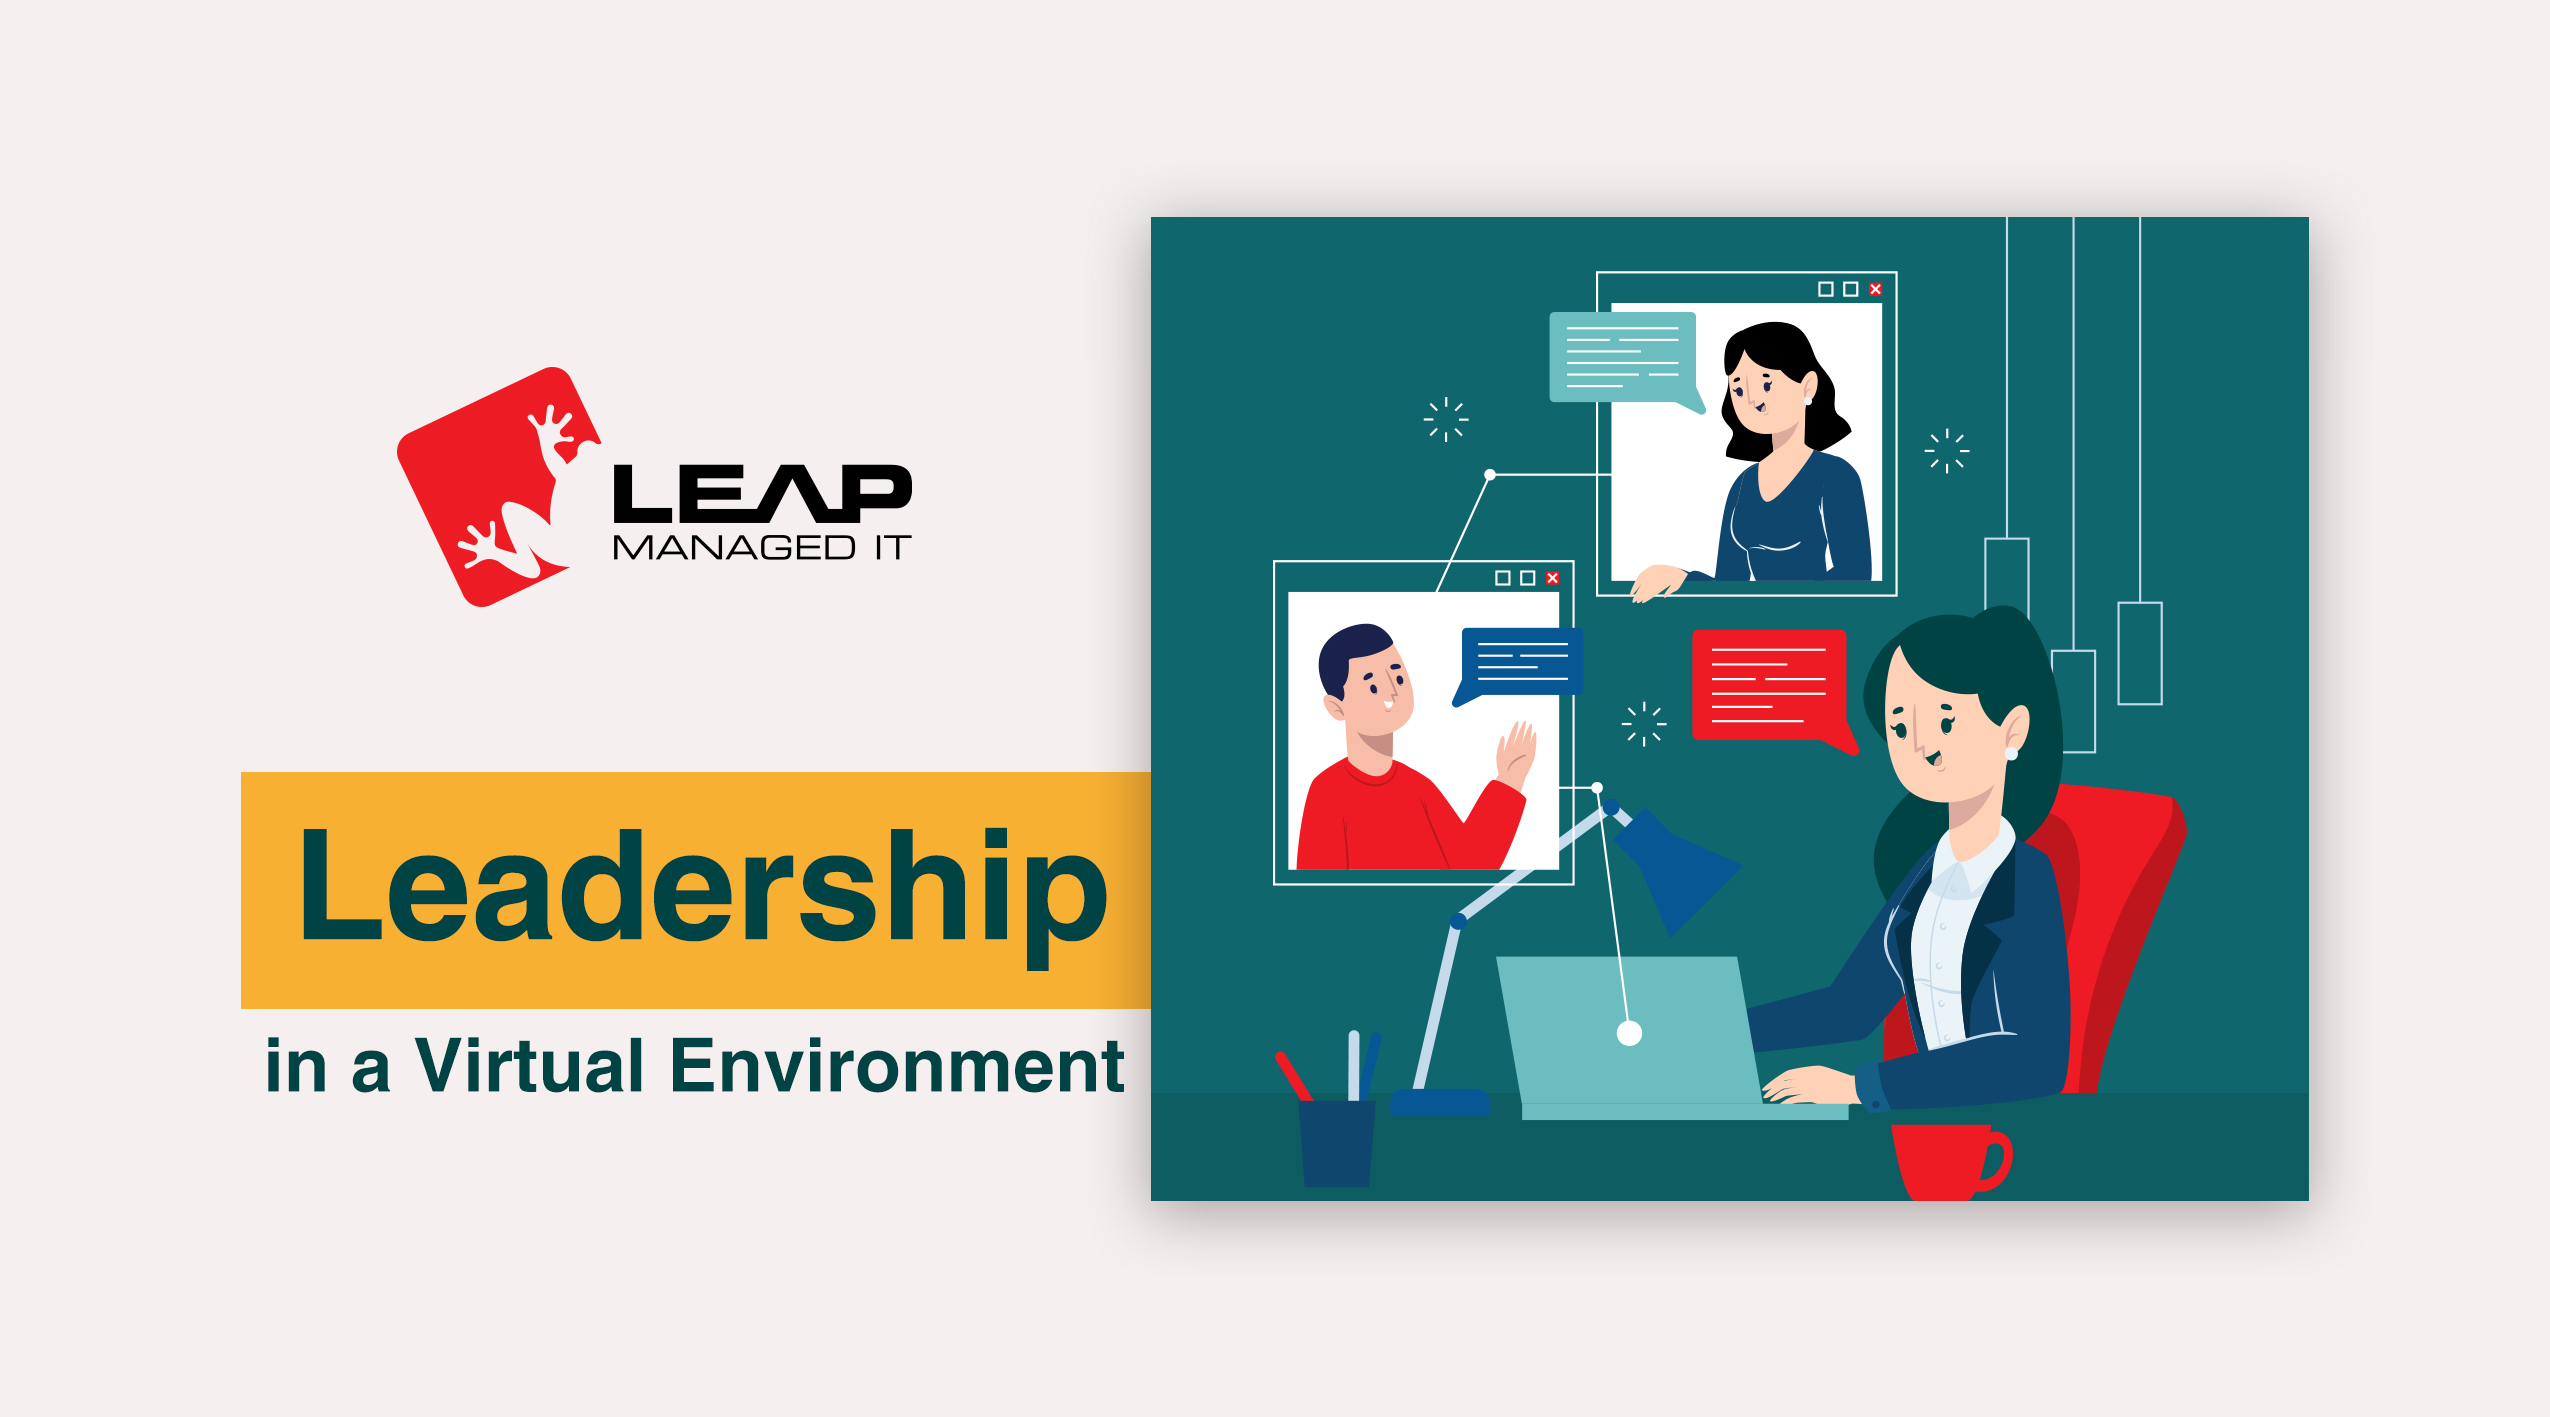 Leadership in a Virtual Environment